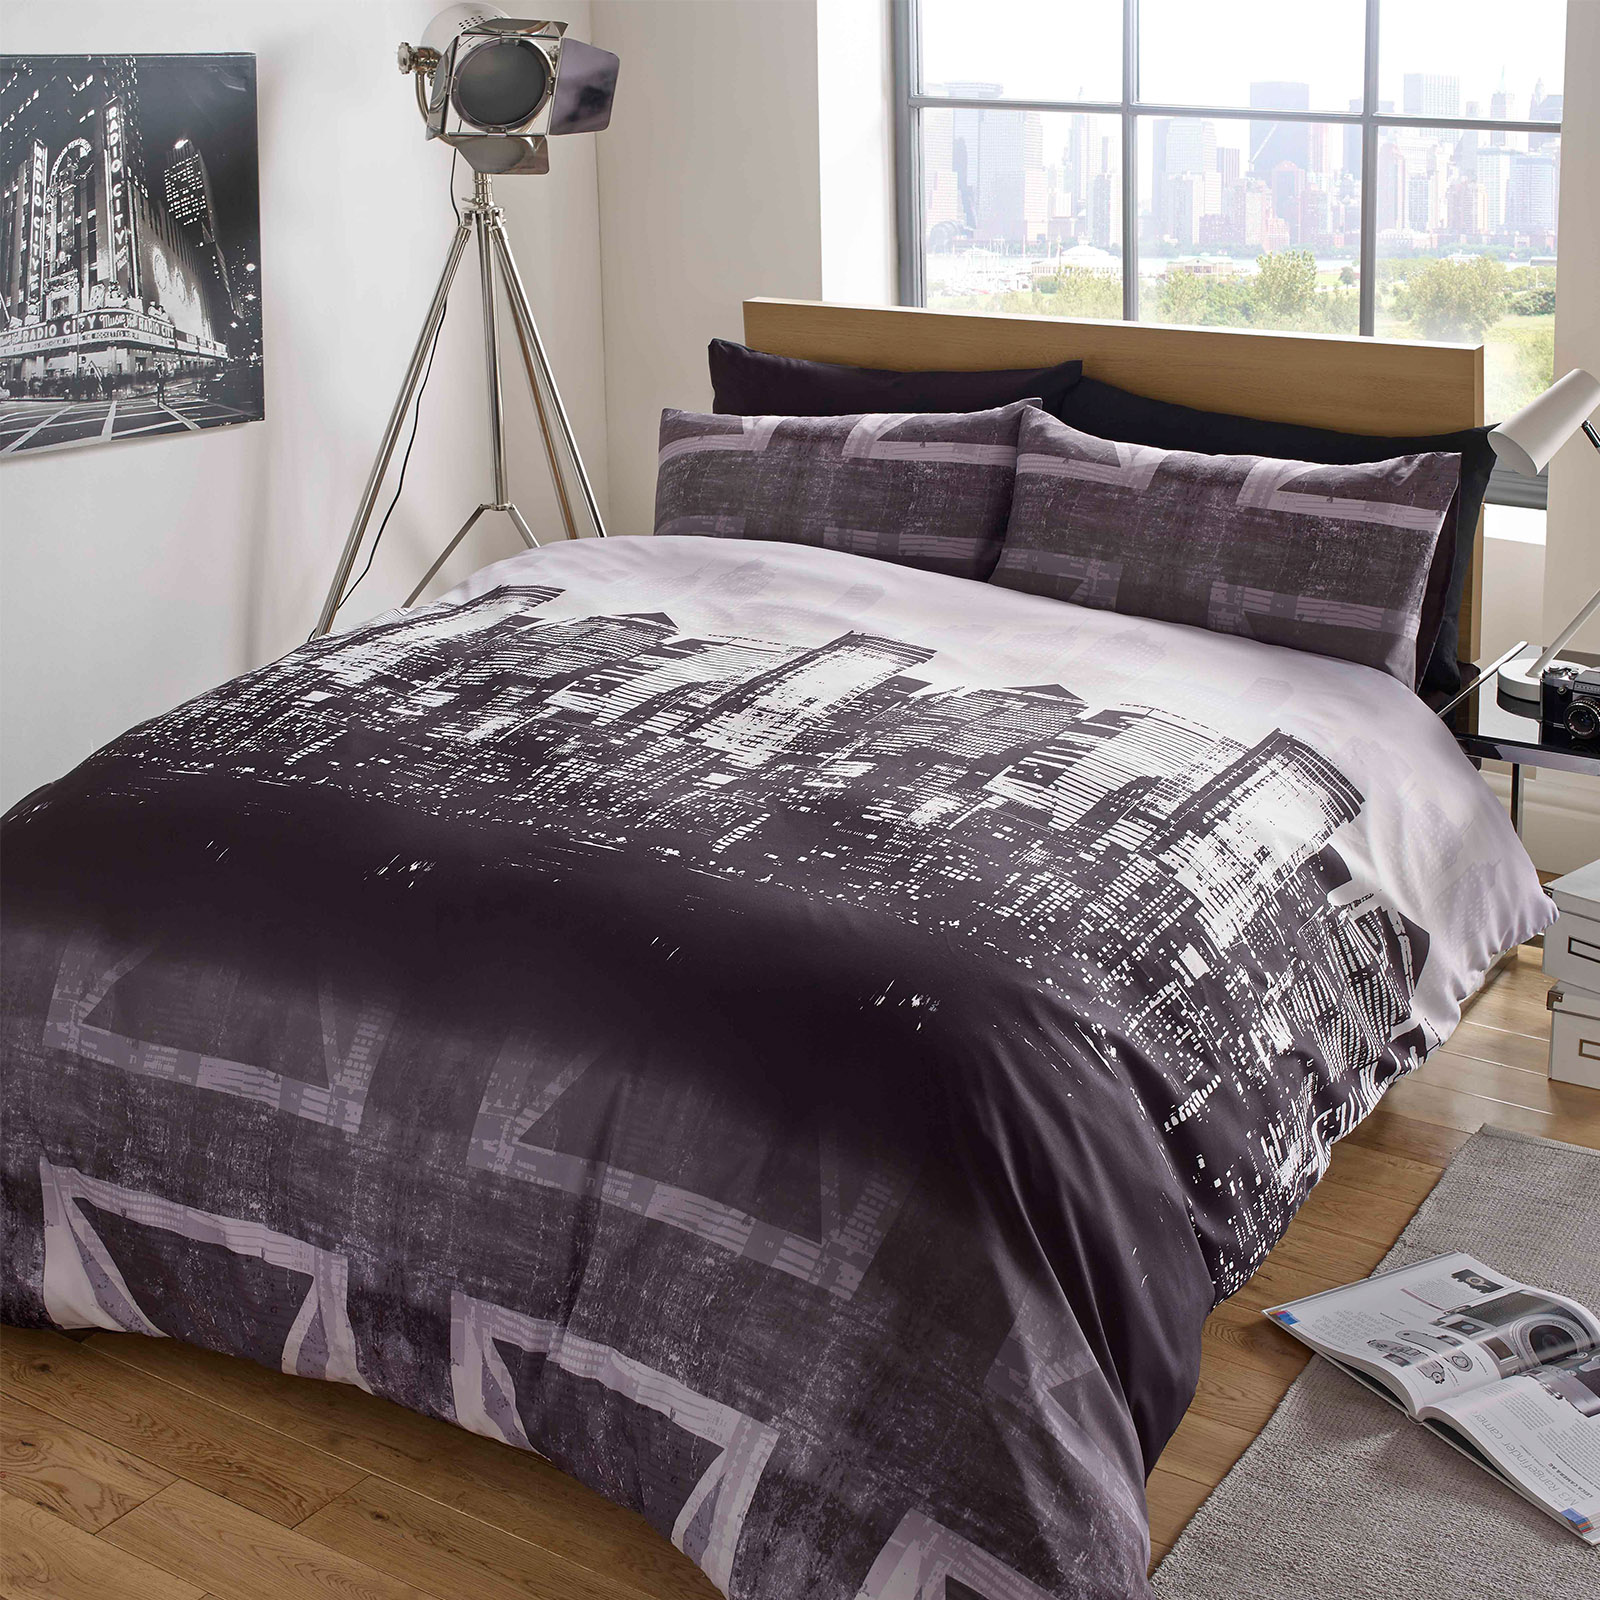 Dreamscene Union Jack Duvet Cover With Pillow Case London Bedding